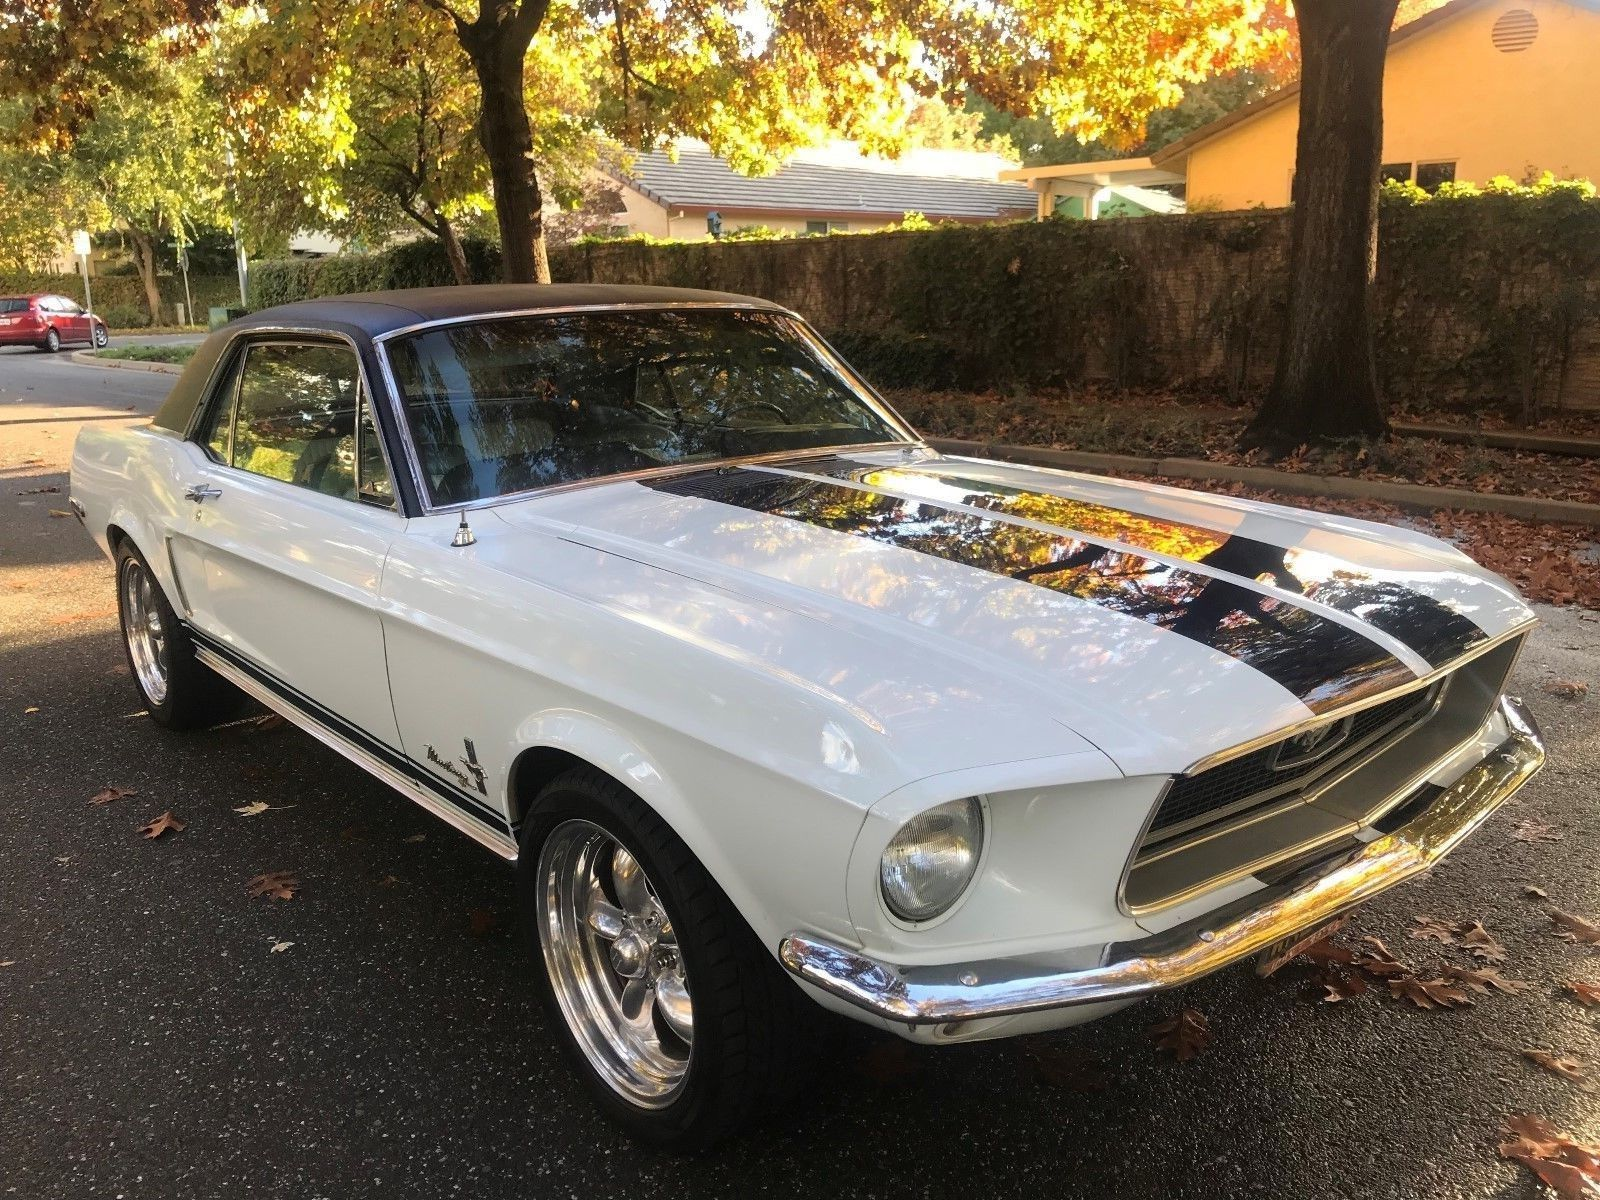 1968 Ford Mustang Base Hardtop 2-Door | Ford mustang, Mustang and Ford